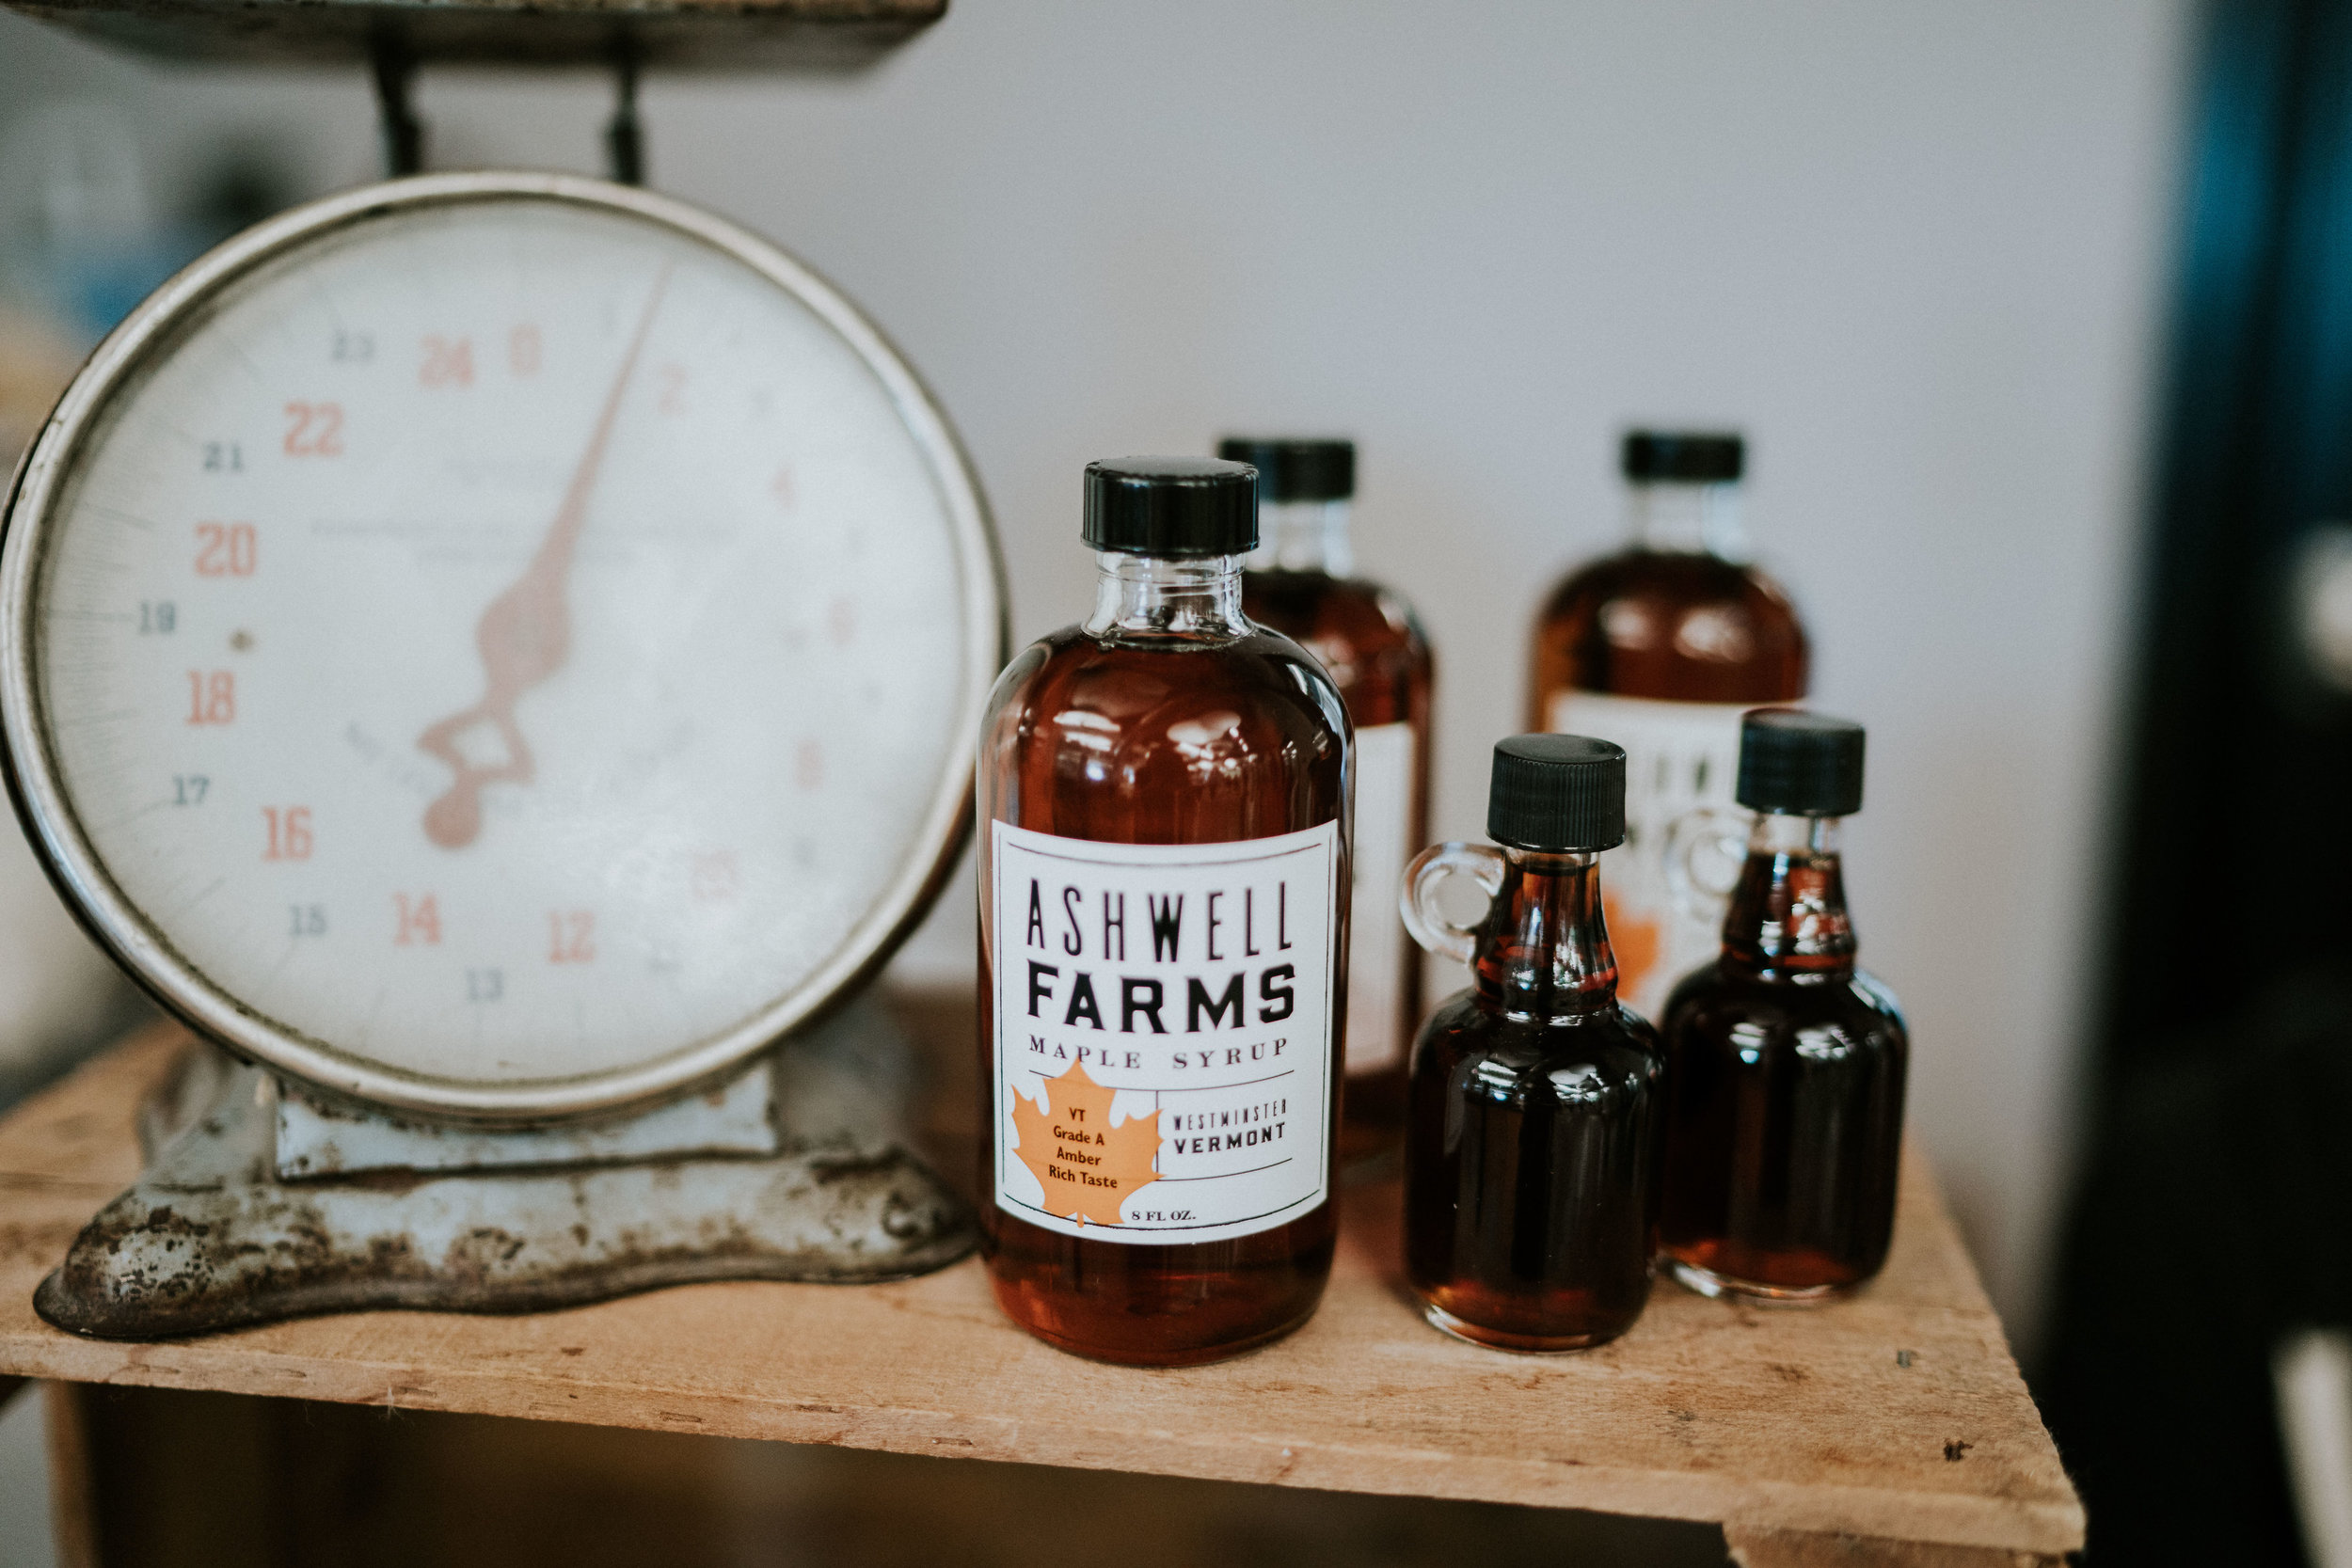 ASHWELL FARMS - Pure Vermont Maple Syrup sold locally. Maple syrup makes people happy! Proceeds from our sales at the market will go towards our friends adoption.